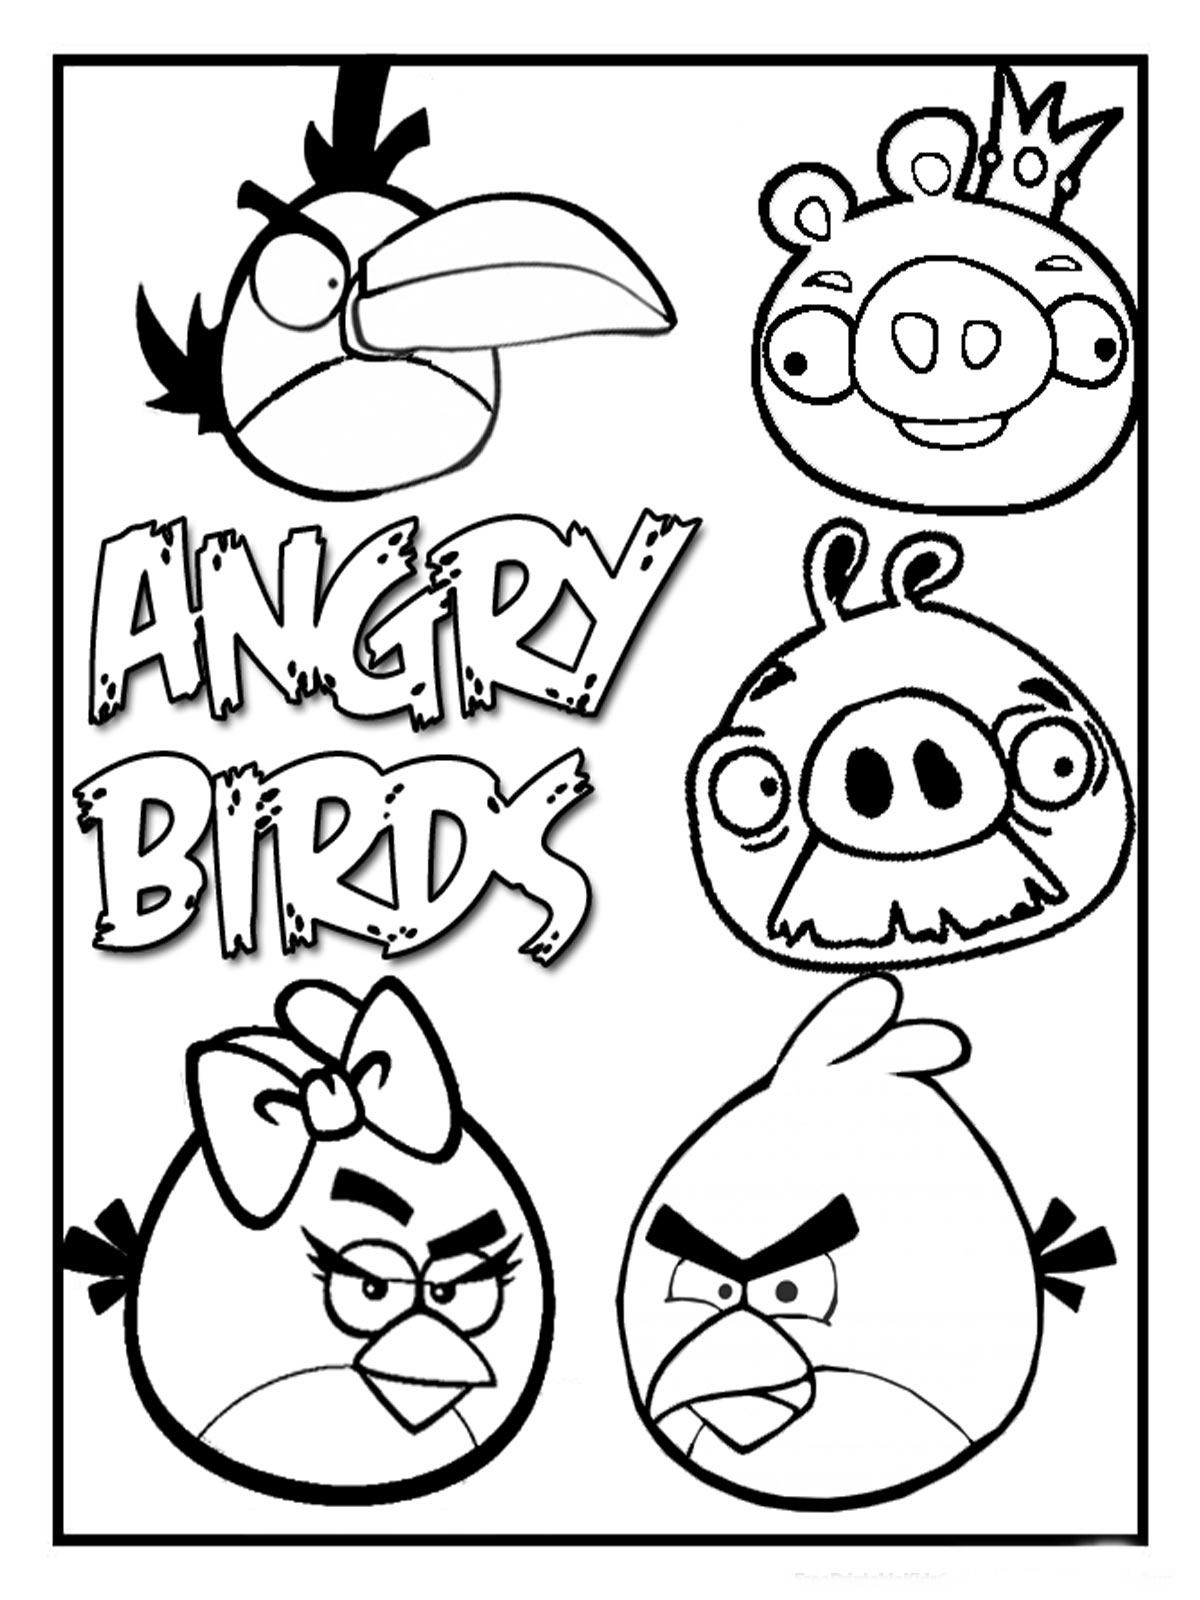 angry birds coloring pages printable httpwwwkidscpcom - Angry Birds Coloring Page